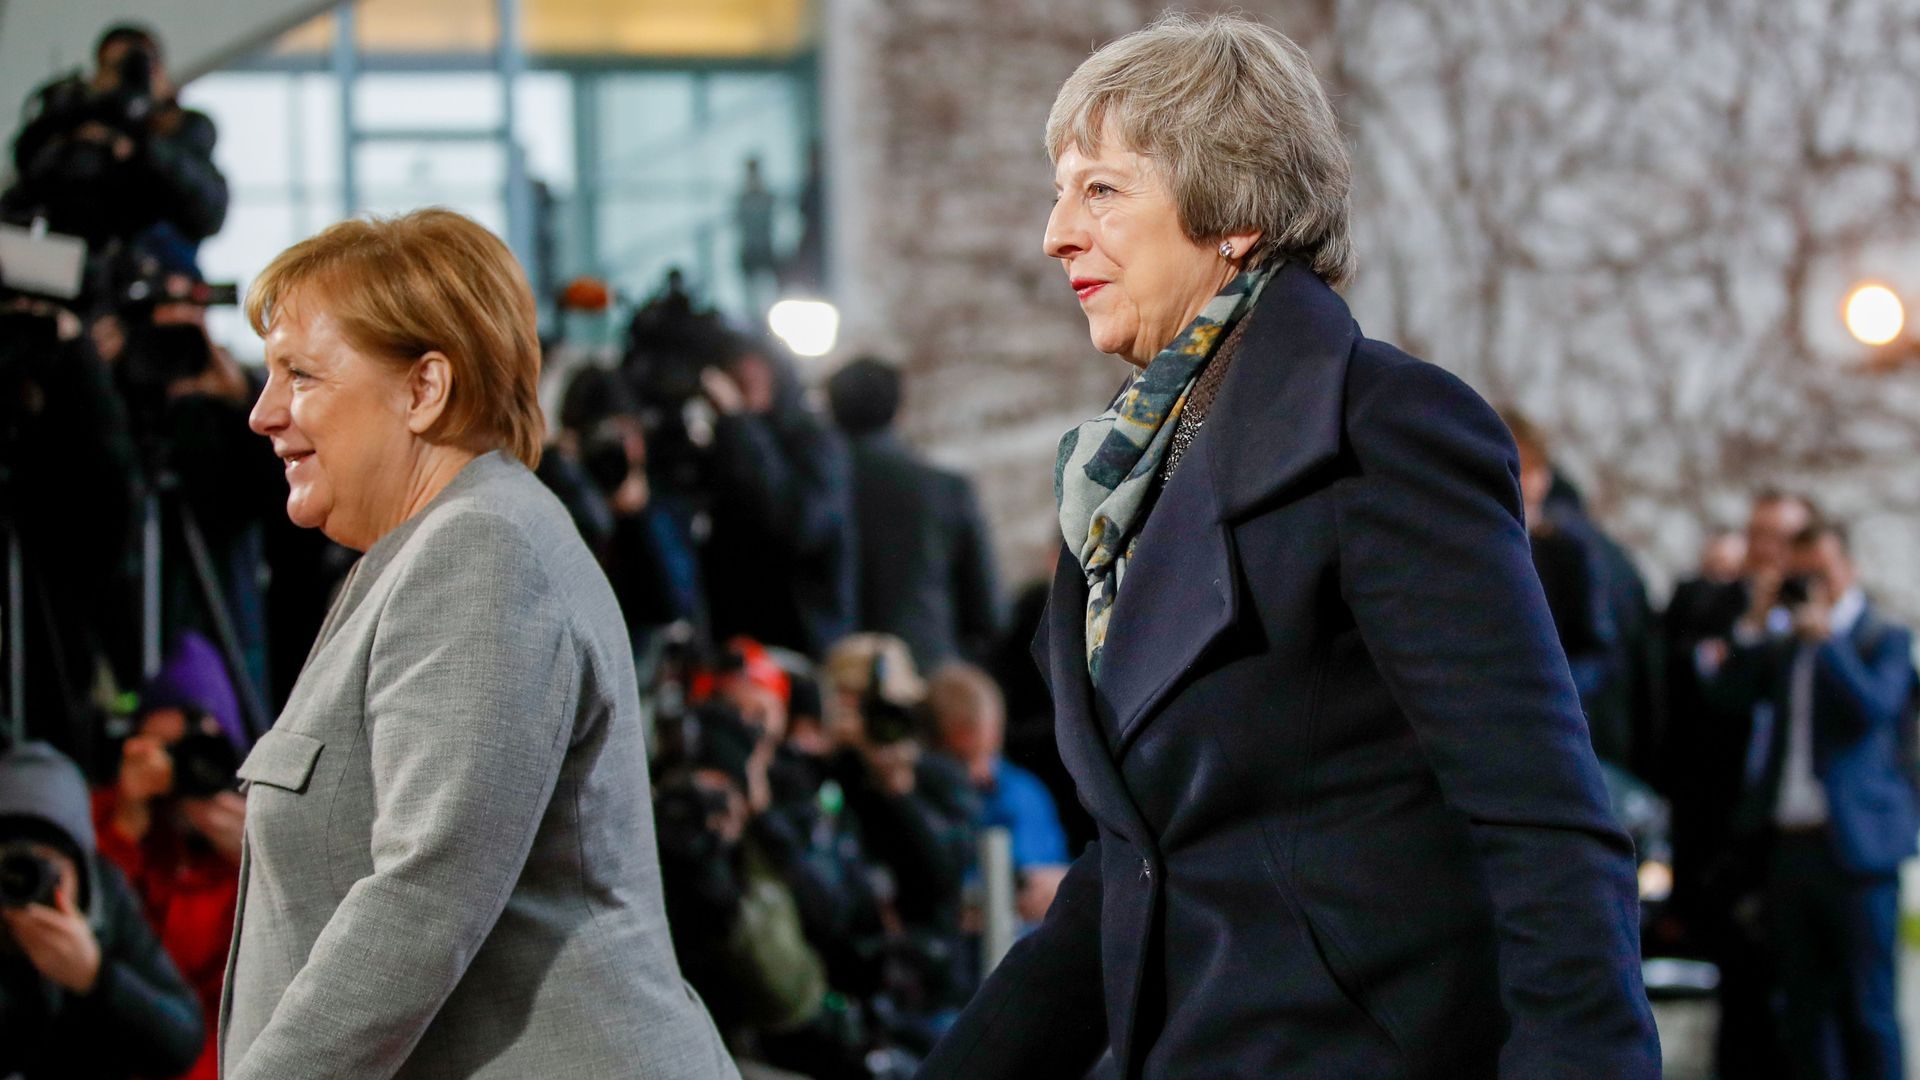 German Chancellor Angela Merkel (L) precedes British Prime Minister Theresa May after greeting her at the Chancellery in Berlin, on December 11, 2018, prior bilateral talks.